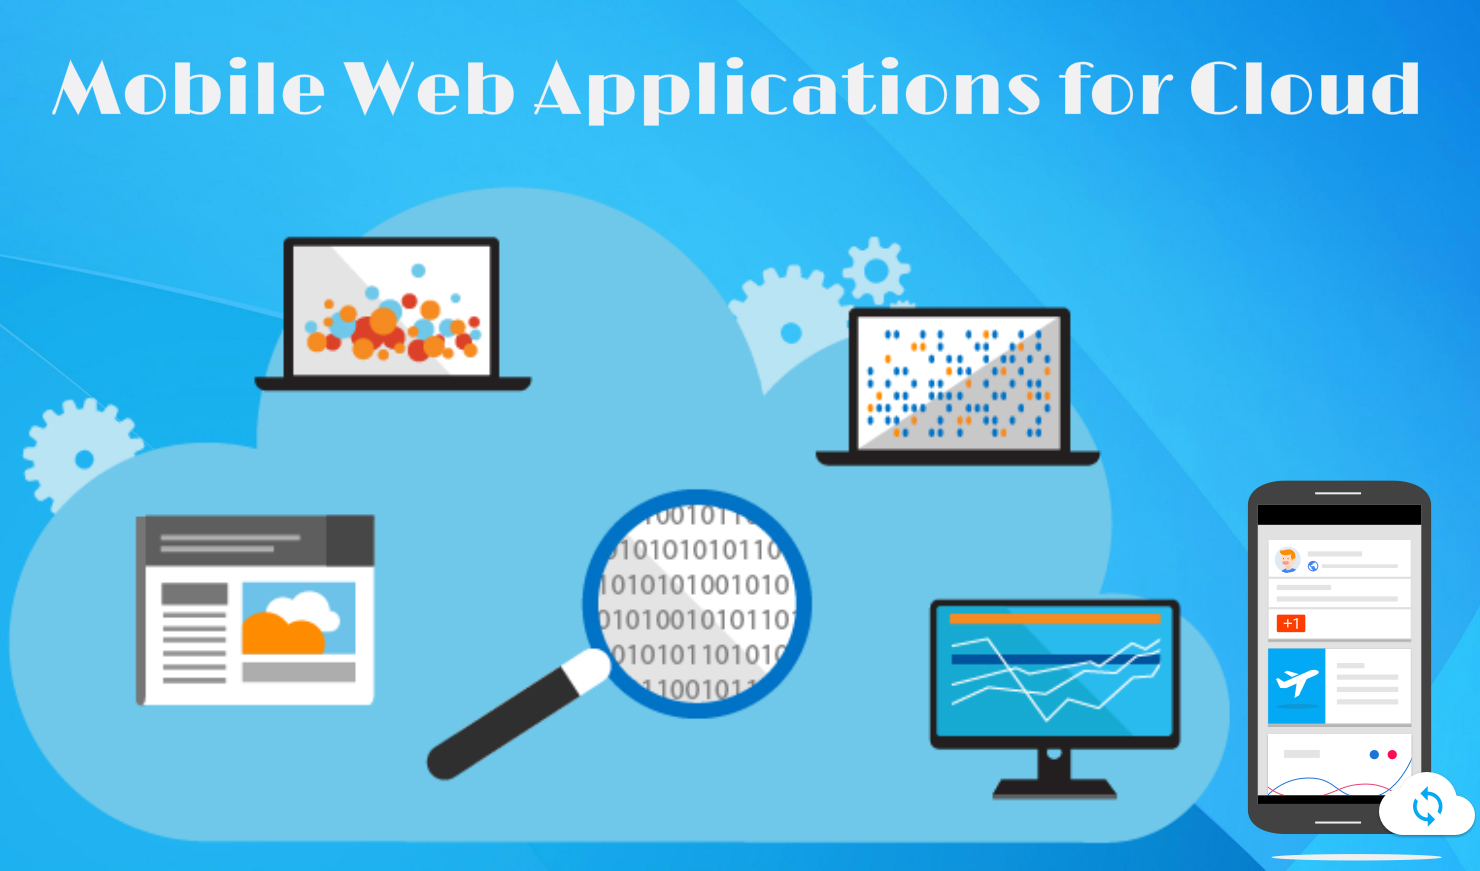 Mobile Web Applications for Cloud - How will It Help Businesses